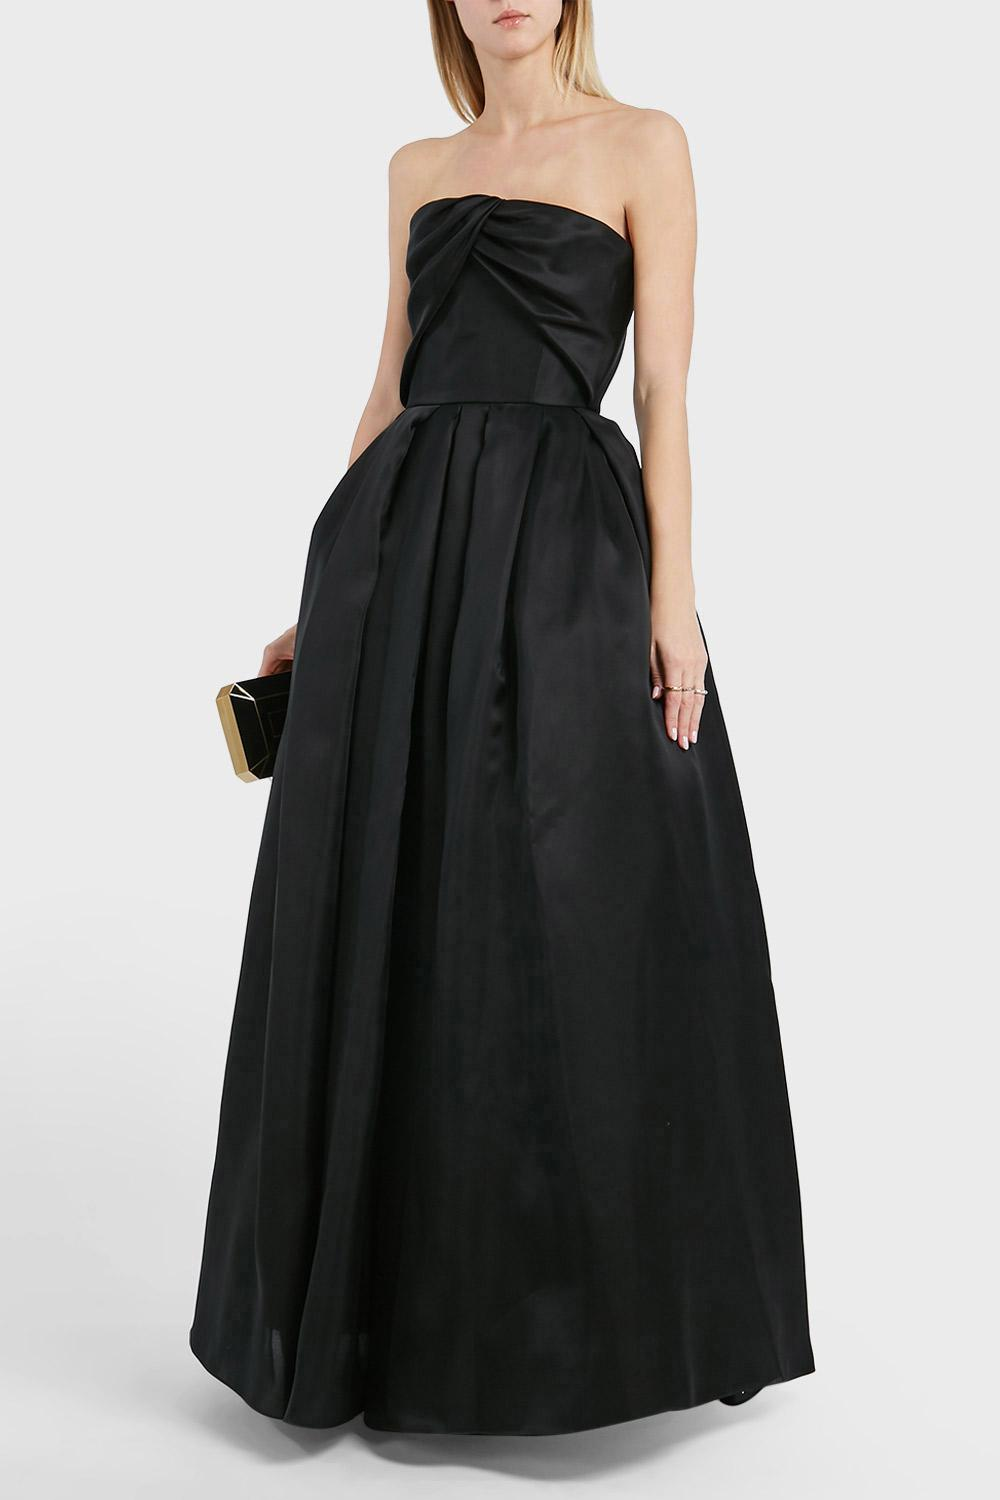 REEM ACRA STRAPLESS SILK GOWN, SIZE US8, WOMEN, BLACK